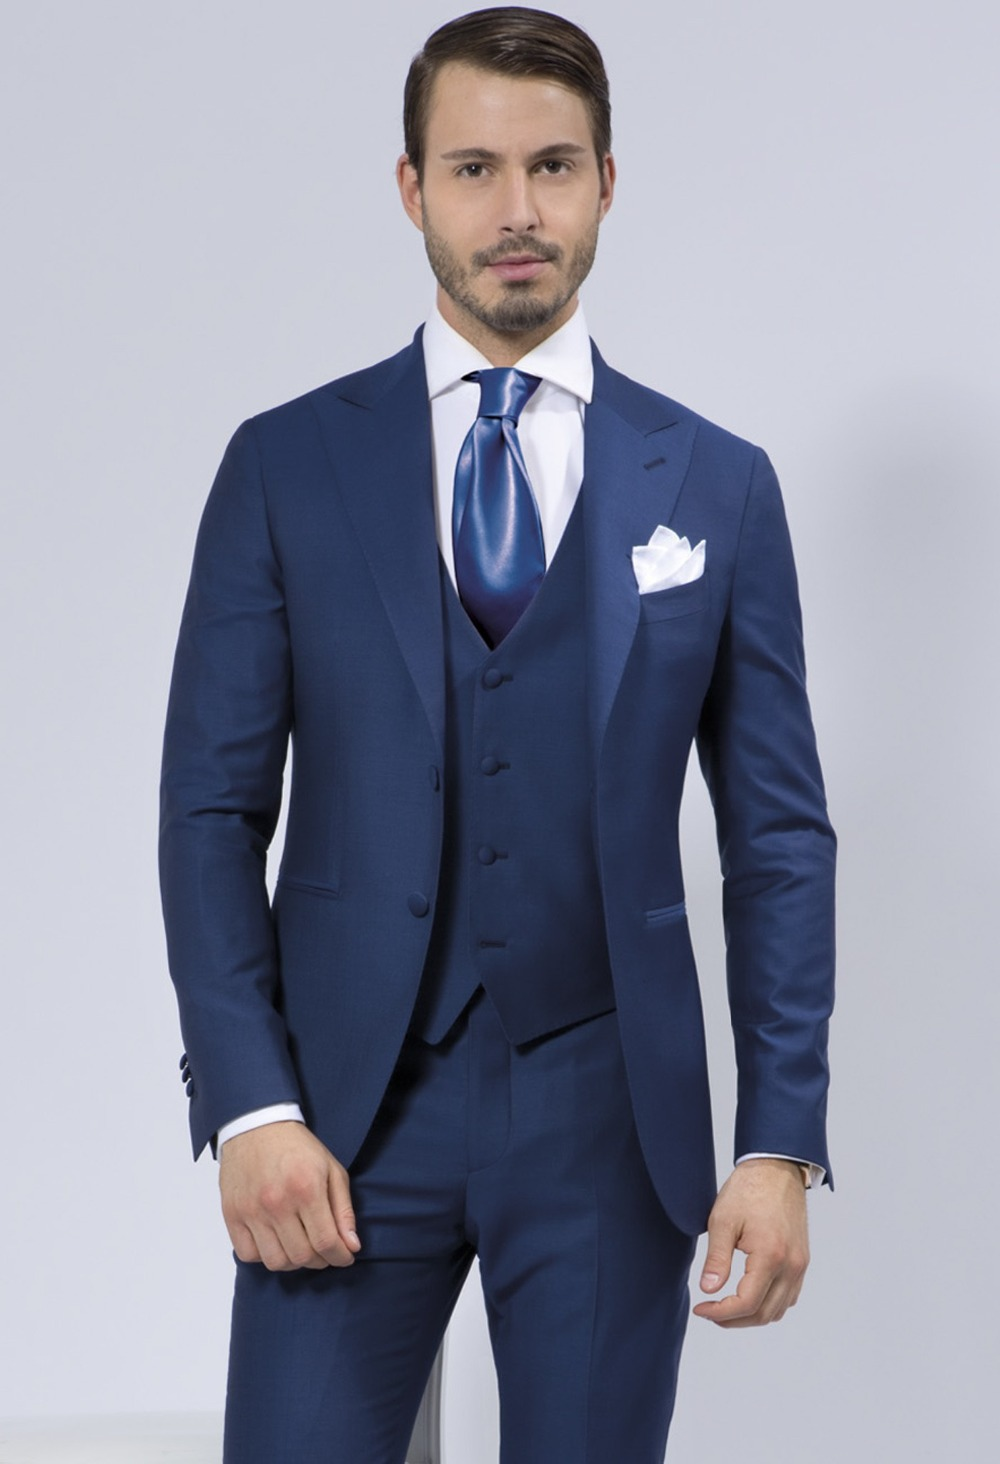 navy blue suit combinations wedding. groom wedding suits charcoal